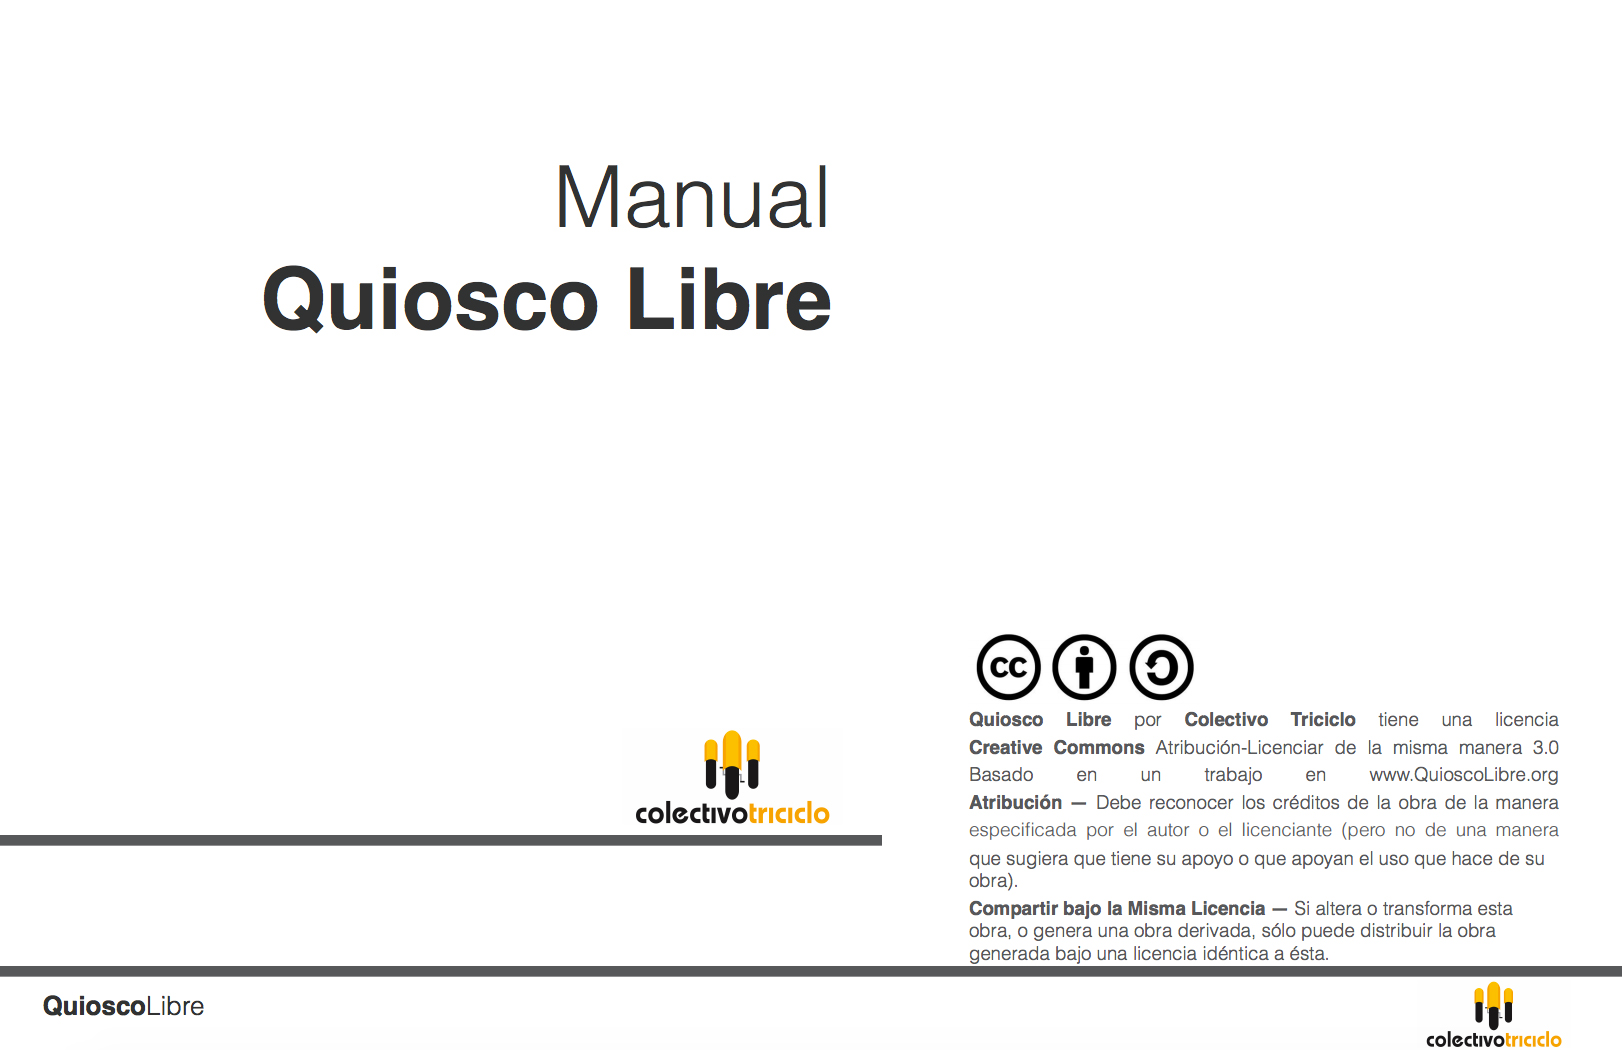 Manual Quiosco libre bajo licencia Creative Commons